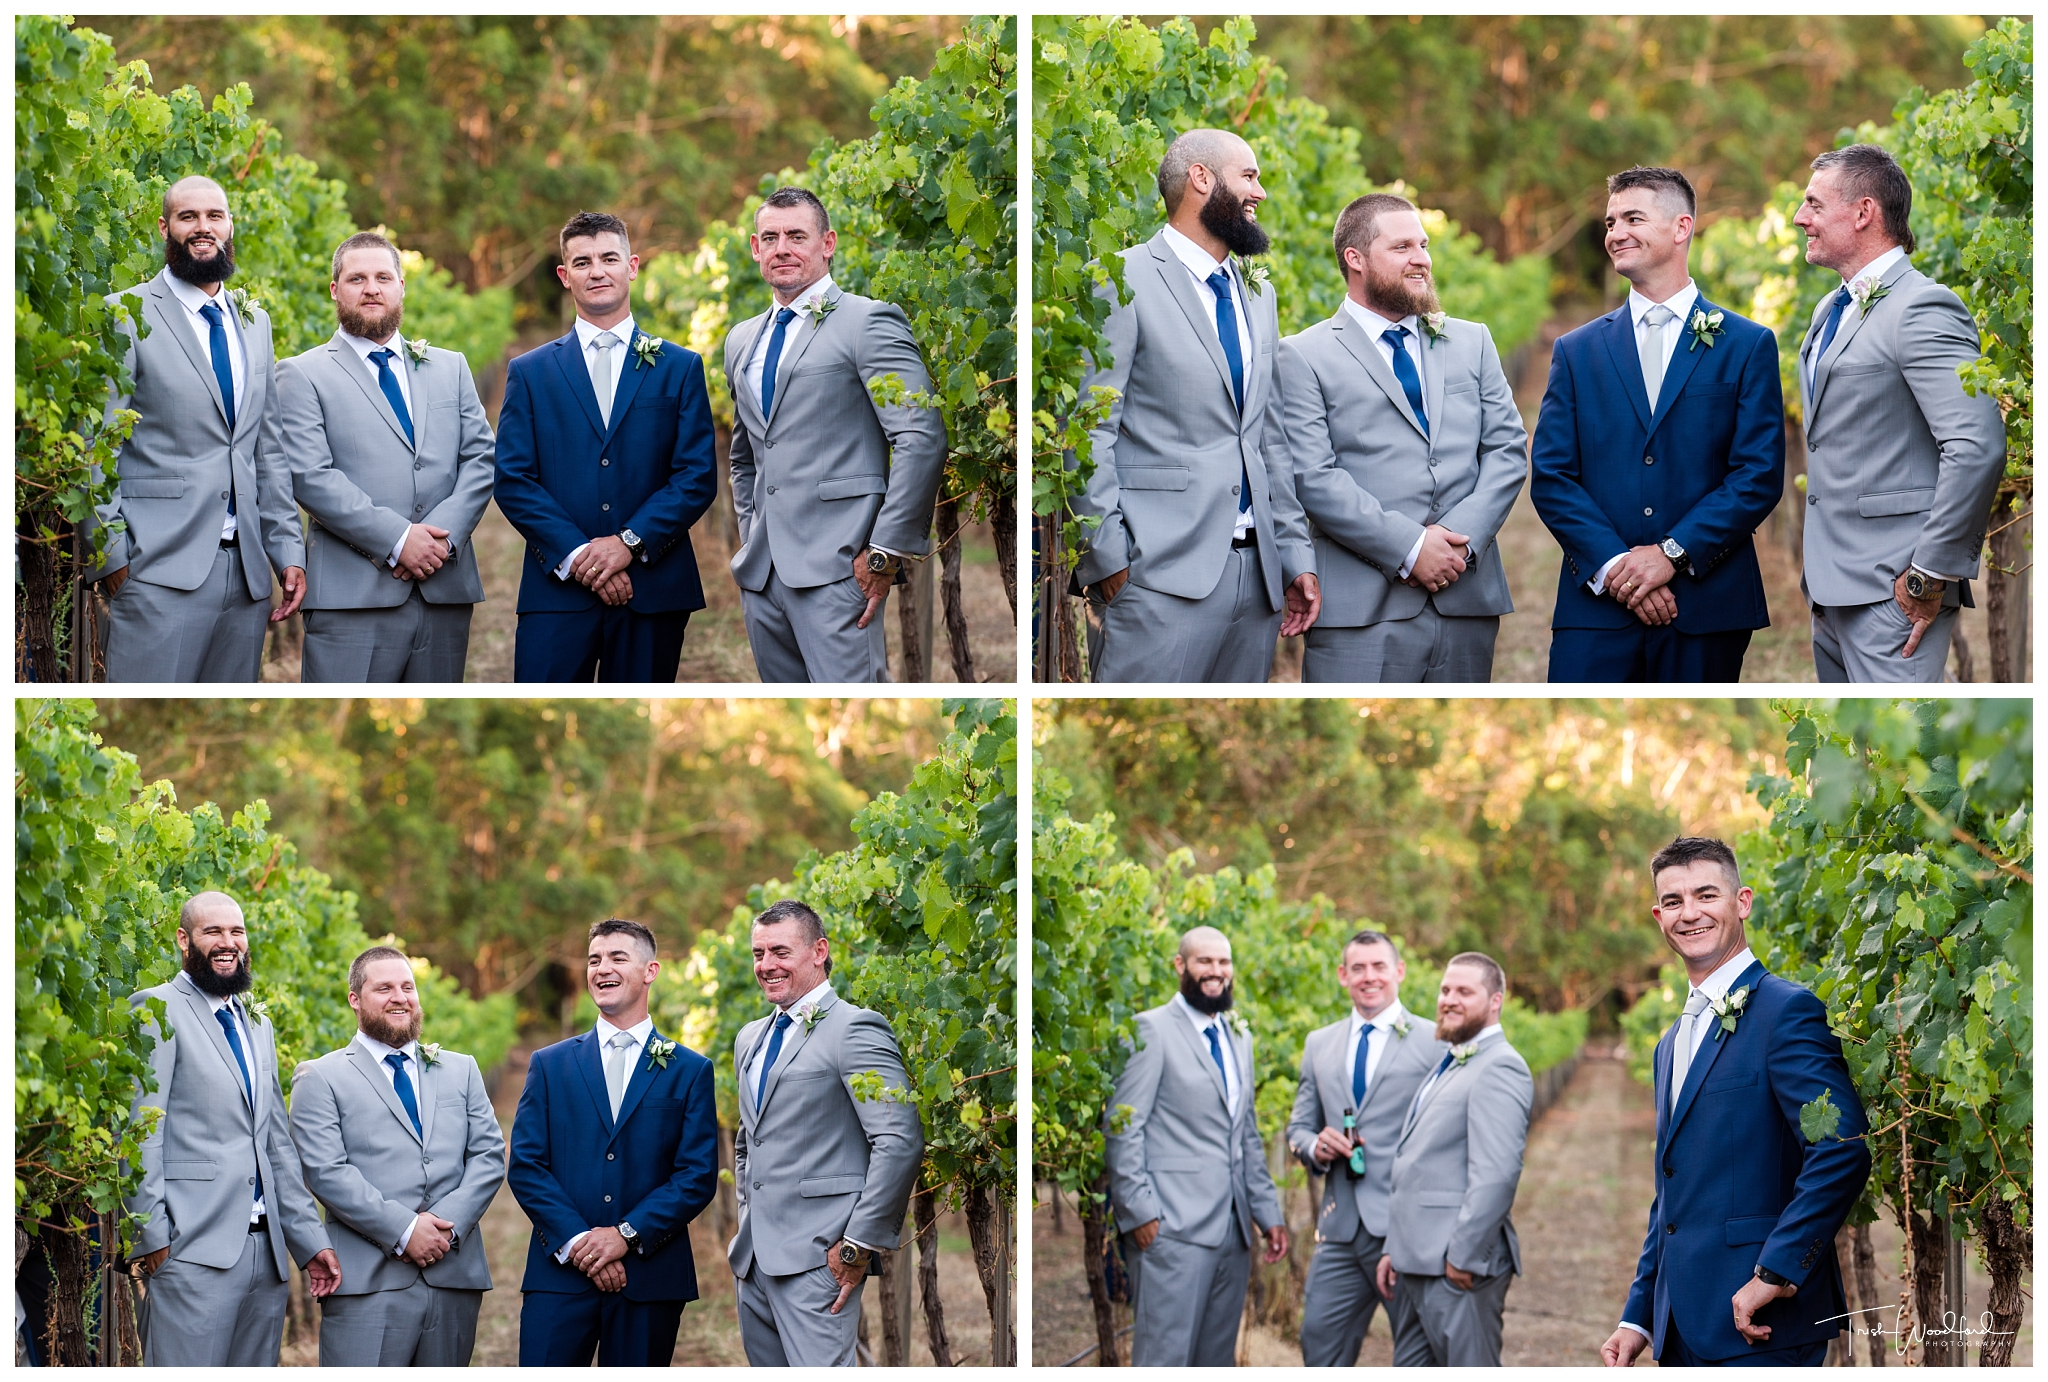 Millbrook Winery Groom & Groomsmen